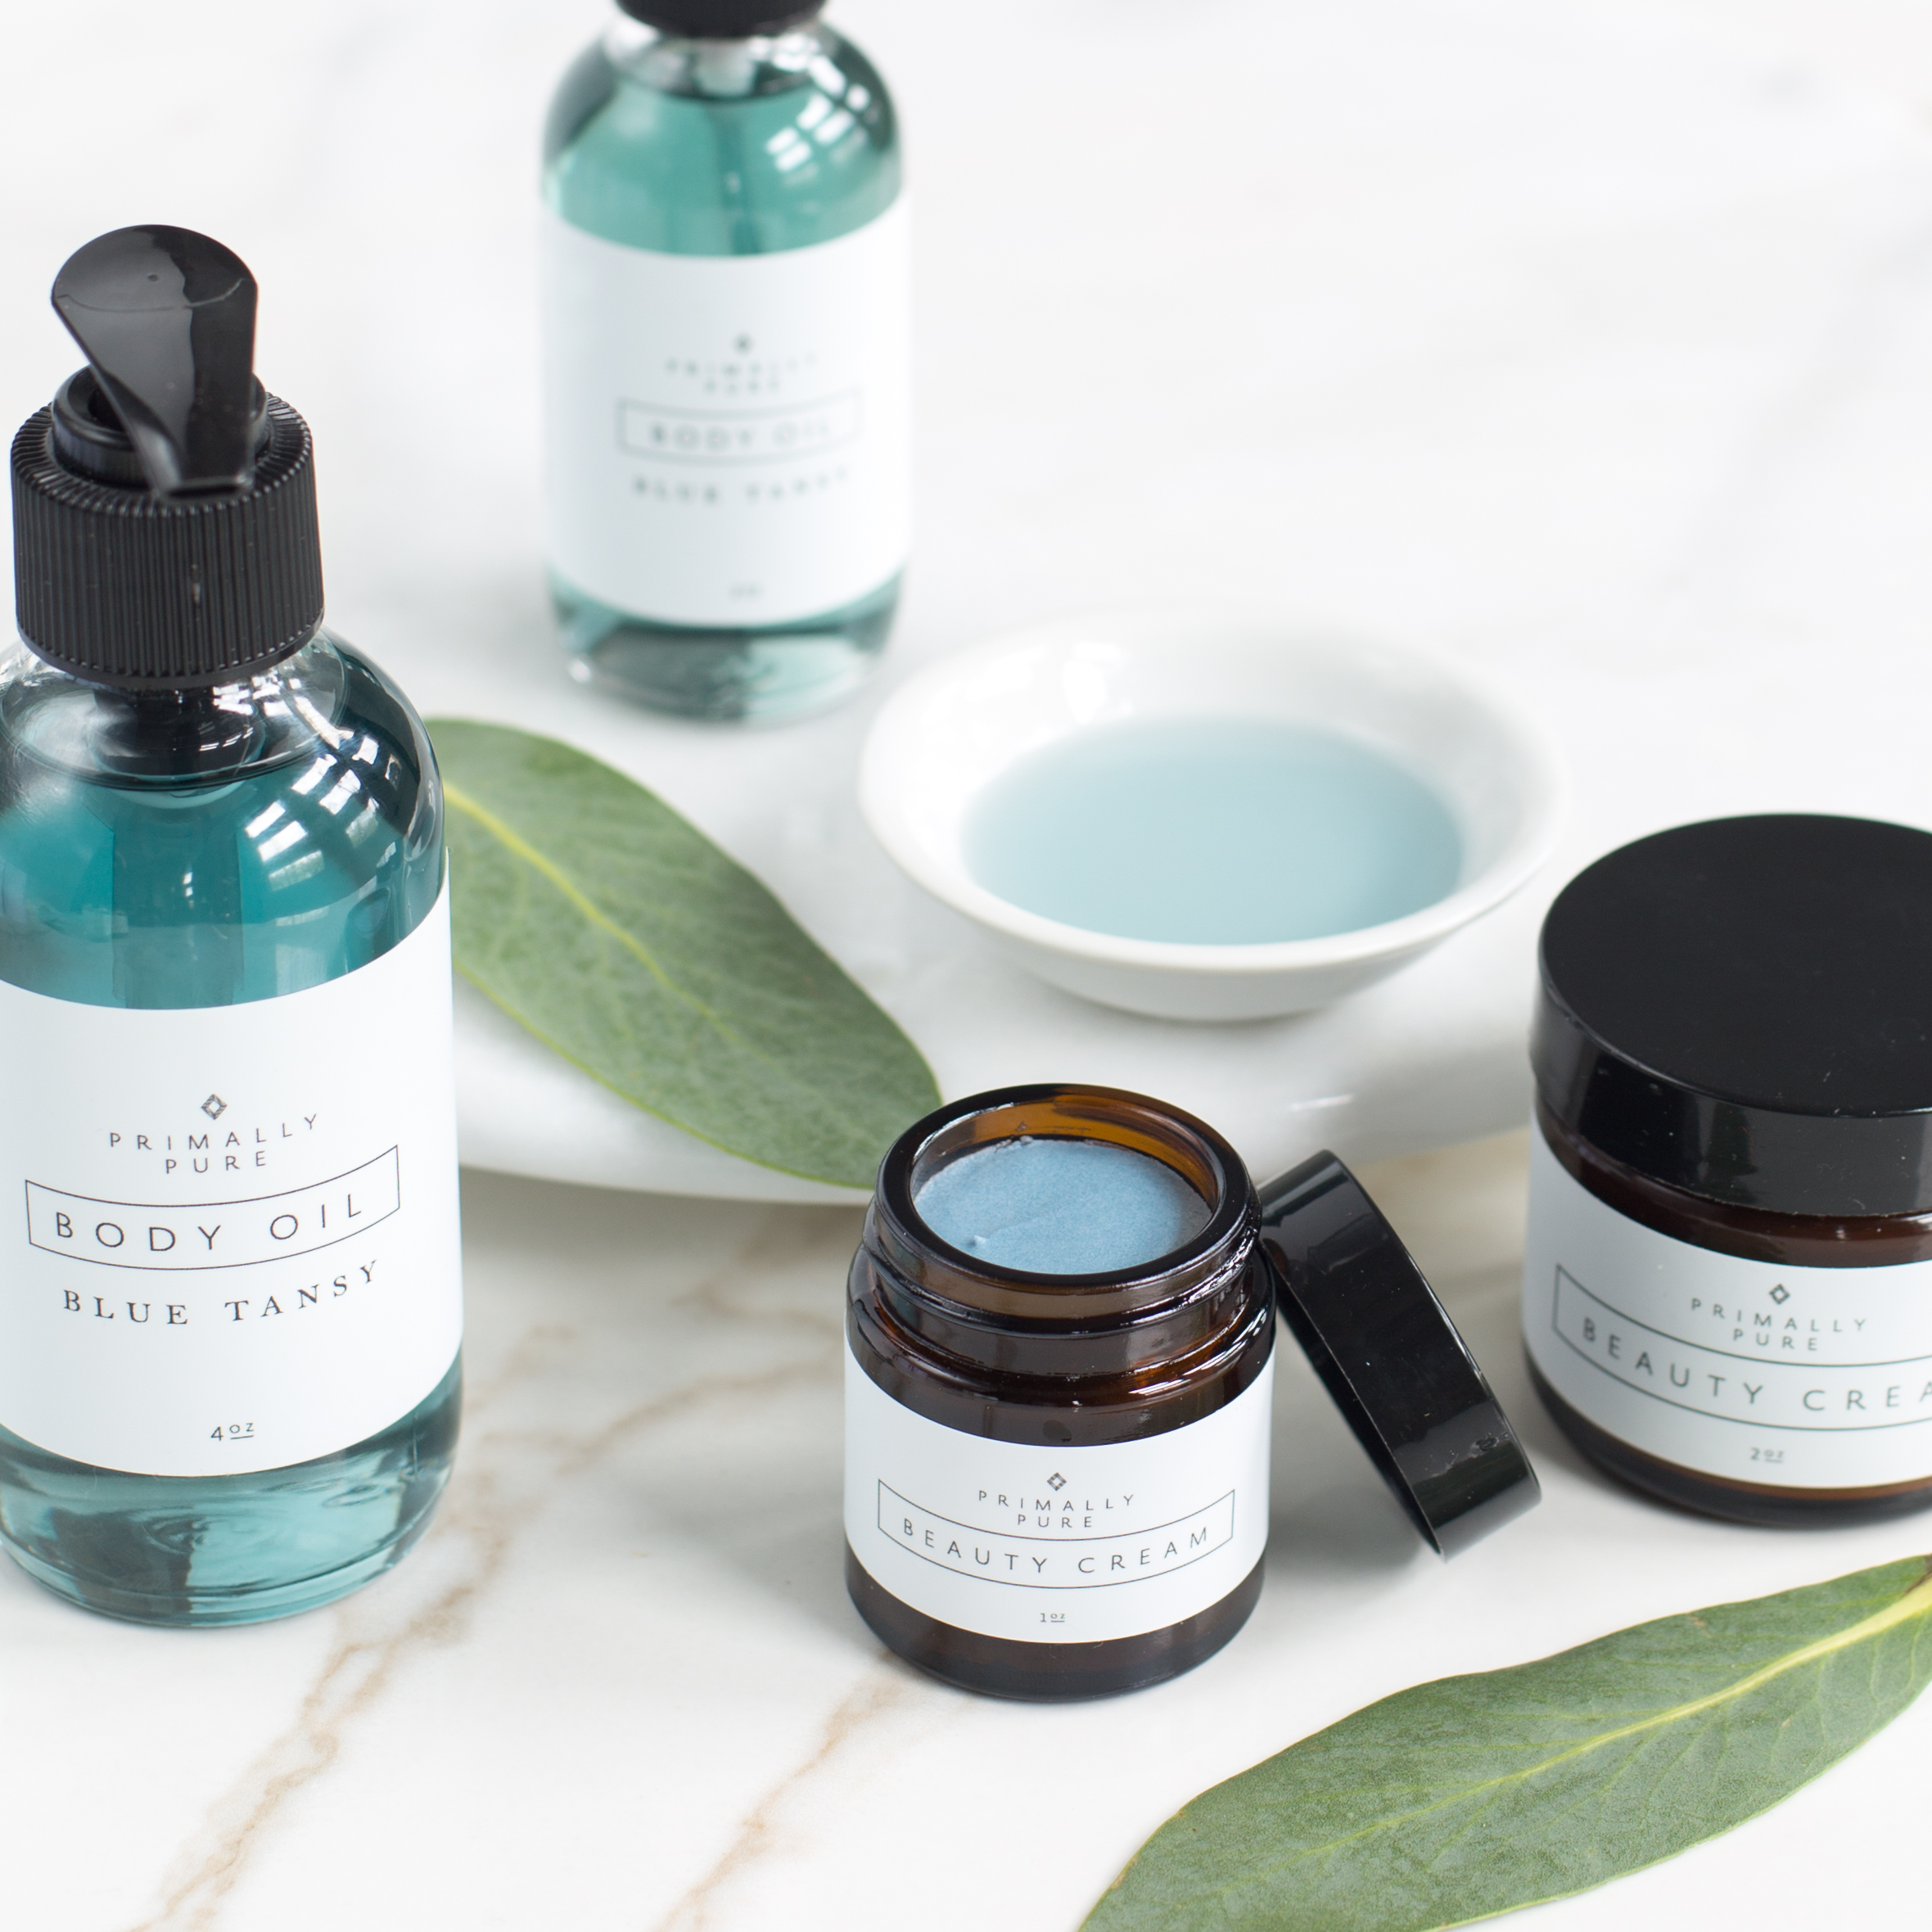 10% off Primally Pure Skincare - Discount Code: MADABOUTFOOD